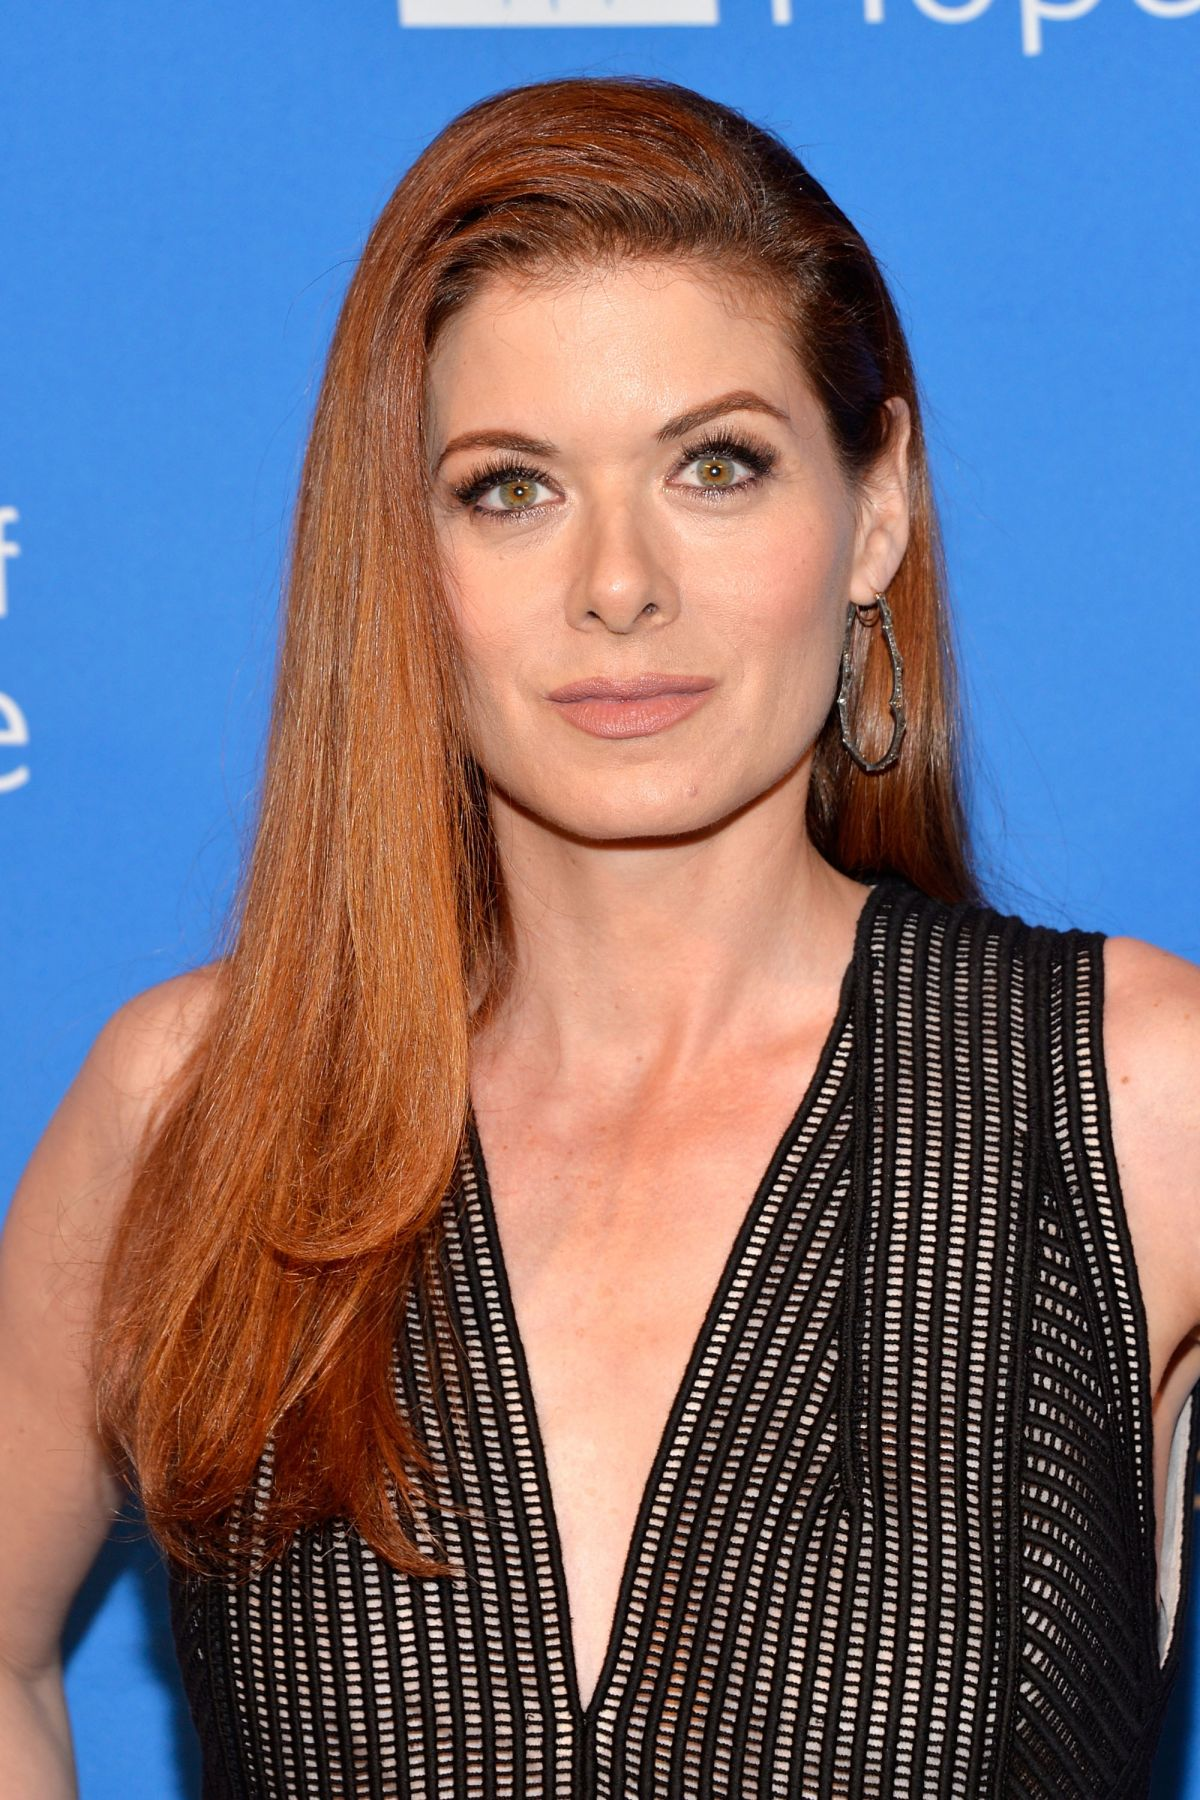 debra messing net worthdebra messing 2016, debra messing 2017, debra messing film, debra messing actress, debra messing gifs, debra messing weight and height, debra messing filmy, debra messing wikipedia, debra messing imdb, debra messing superiorpics, debra messing fansite, debra messing instagram, debra messing twitter, debra messing movies, debra messing leather, debra messing wiki, debra messing best movies, debra messing net worth, debra messing wallpaper, debra messing filmography